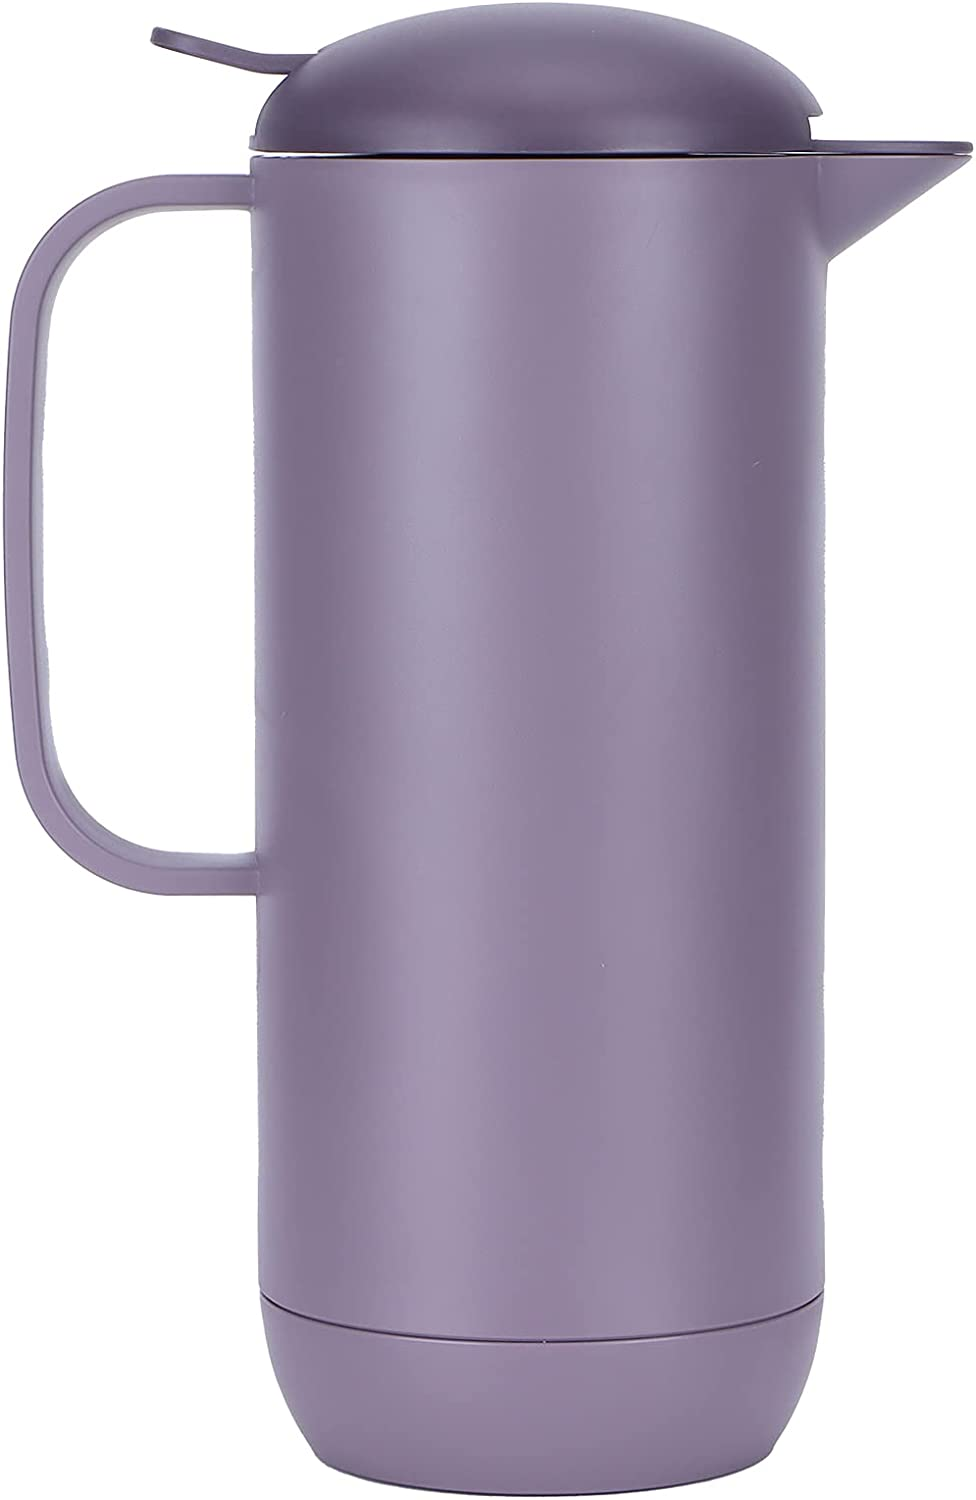 Coffee Jacksonville Mall Quantity limited Carafe Stainless Steel Double Vacuum Thermo Walled